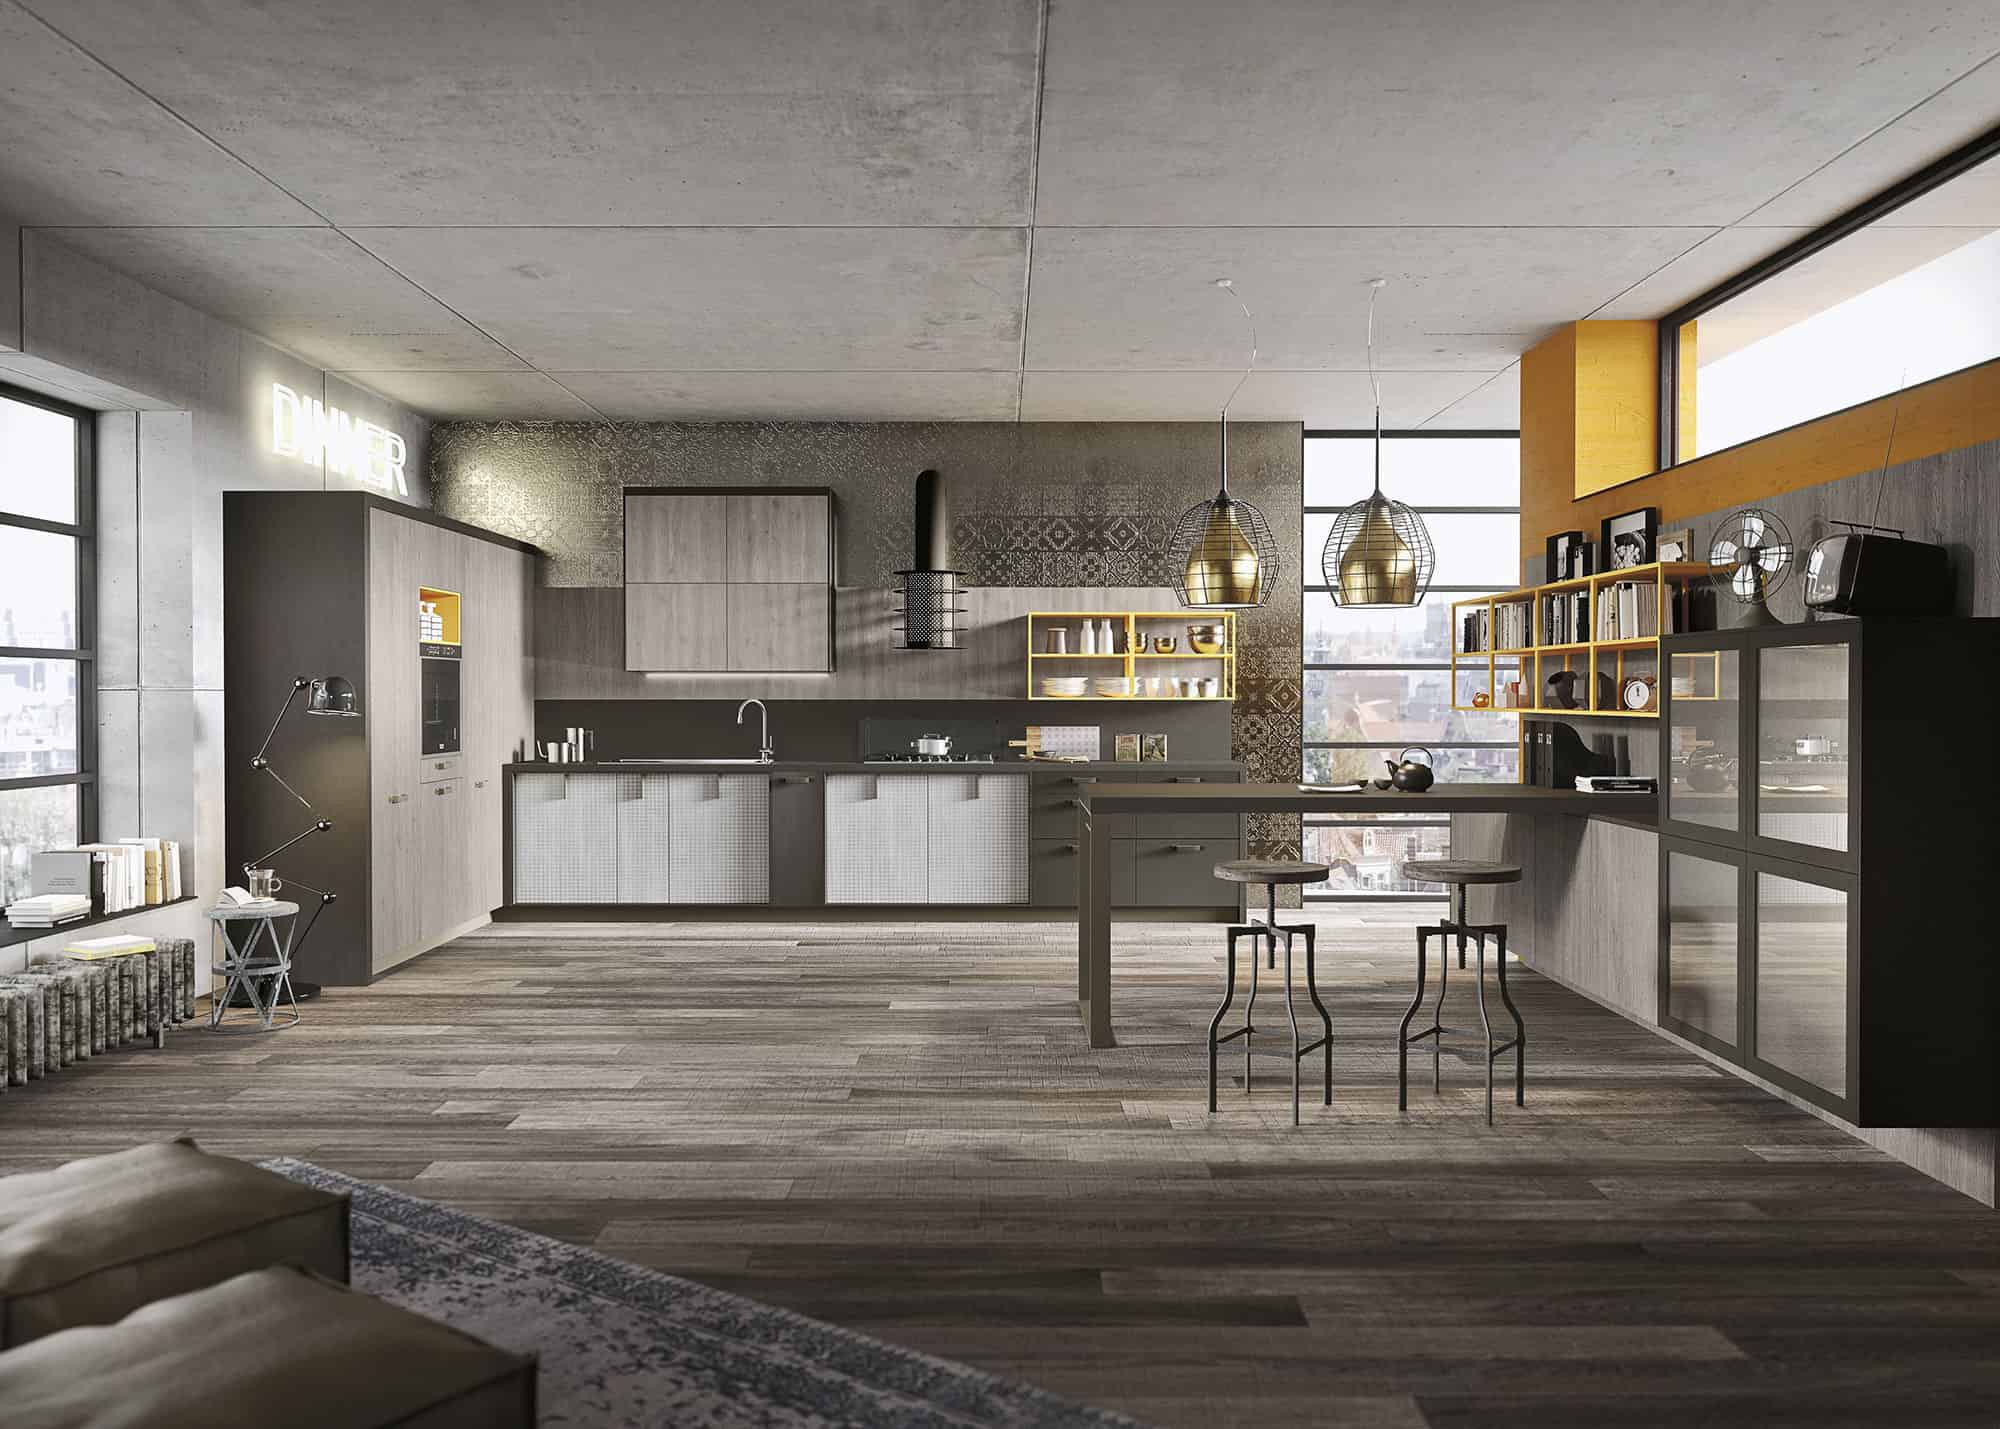 Uncategorized Urban Kitchen Design kitchen design for lofts 3 urban ideas from snaidero this loft above uses the same elements as one with modern look but it features weathered looking